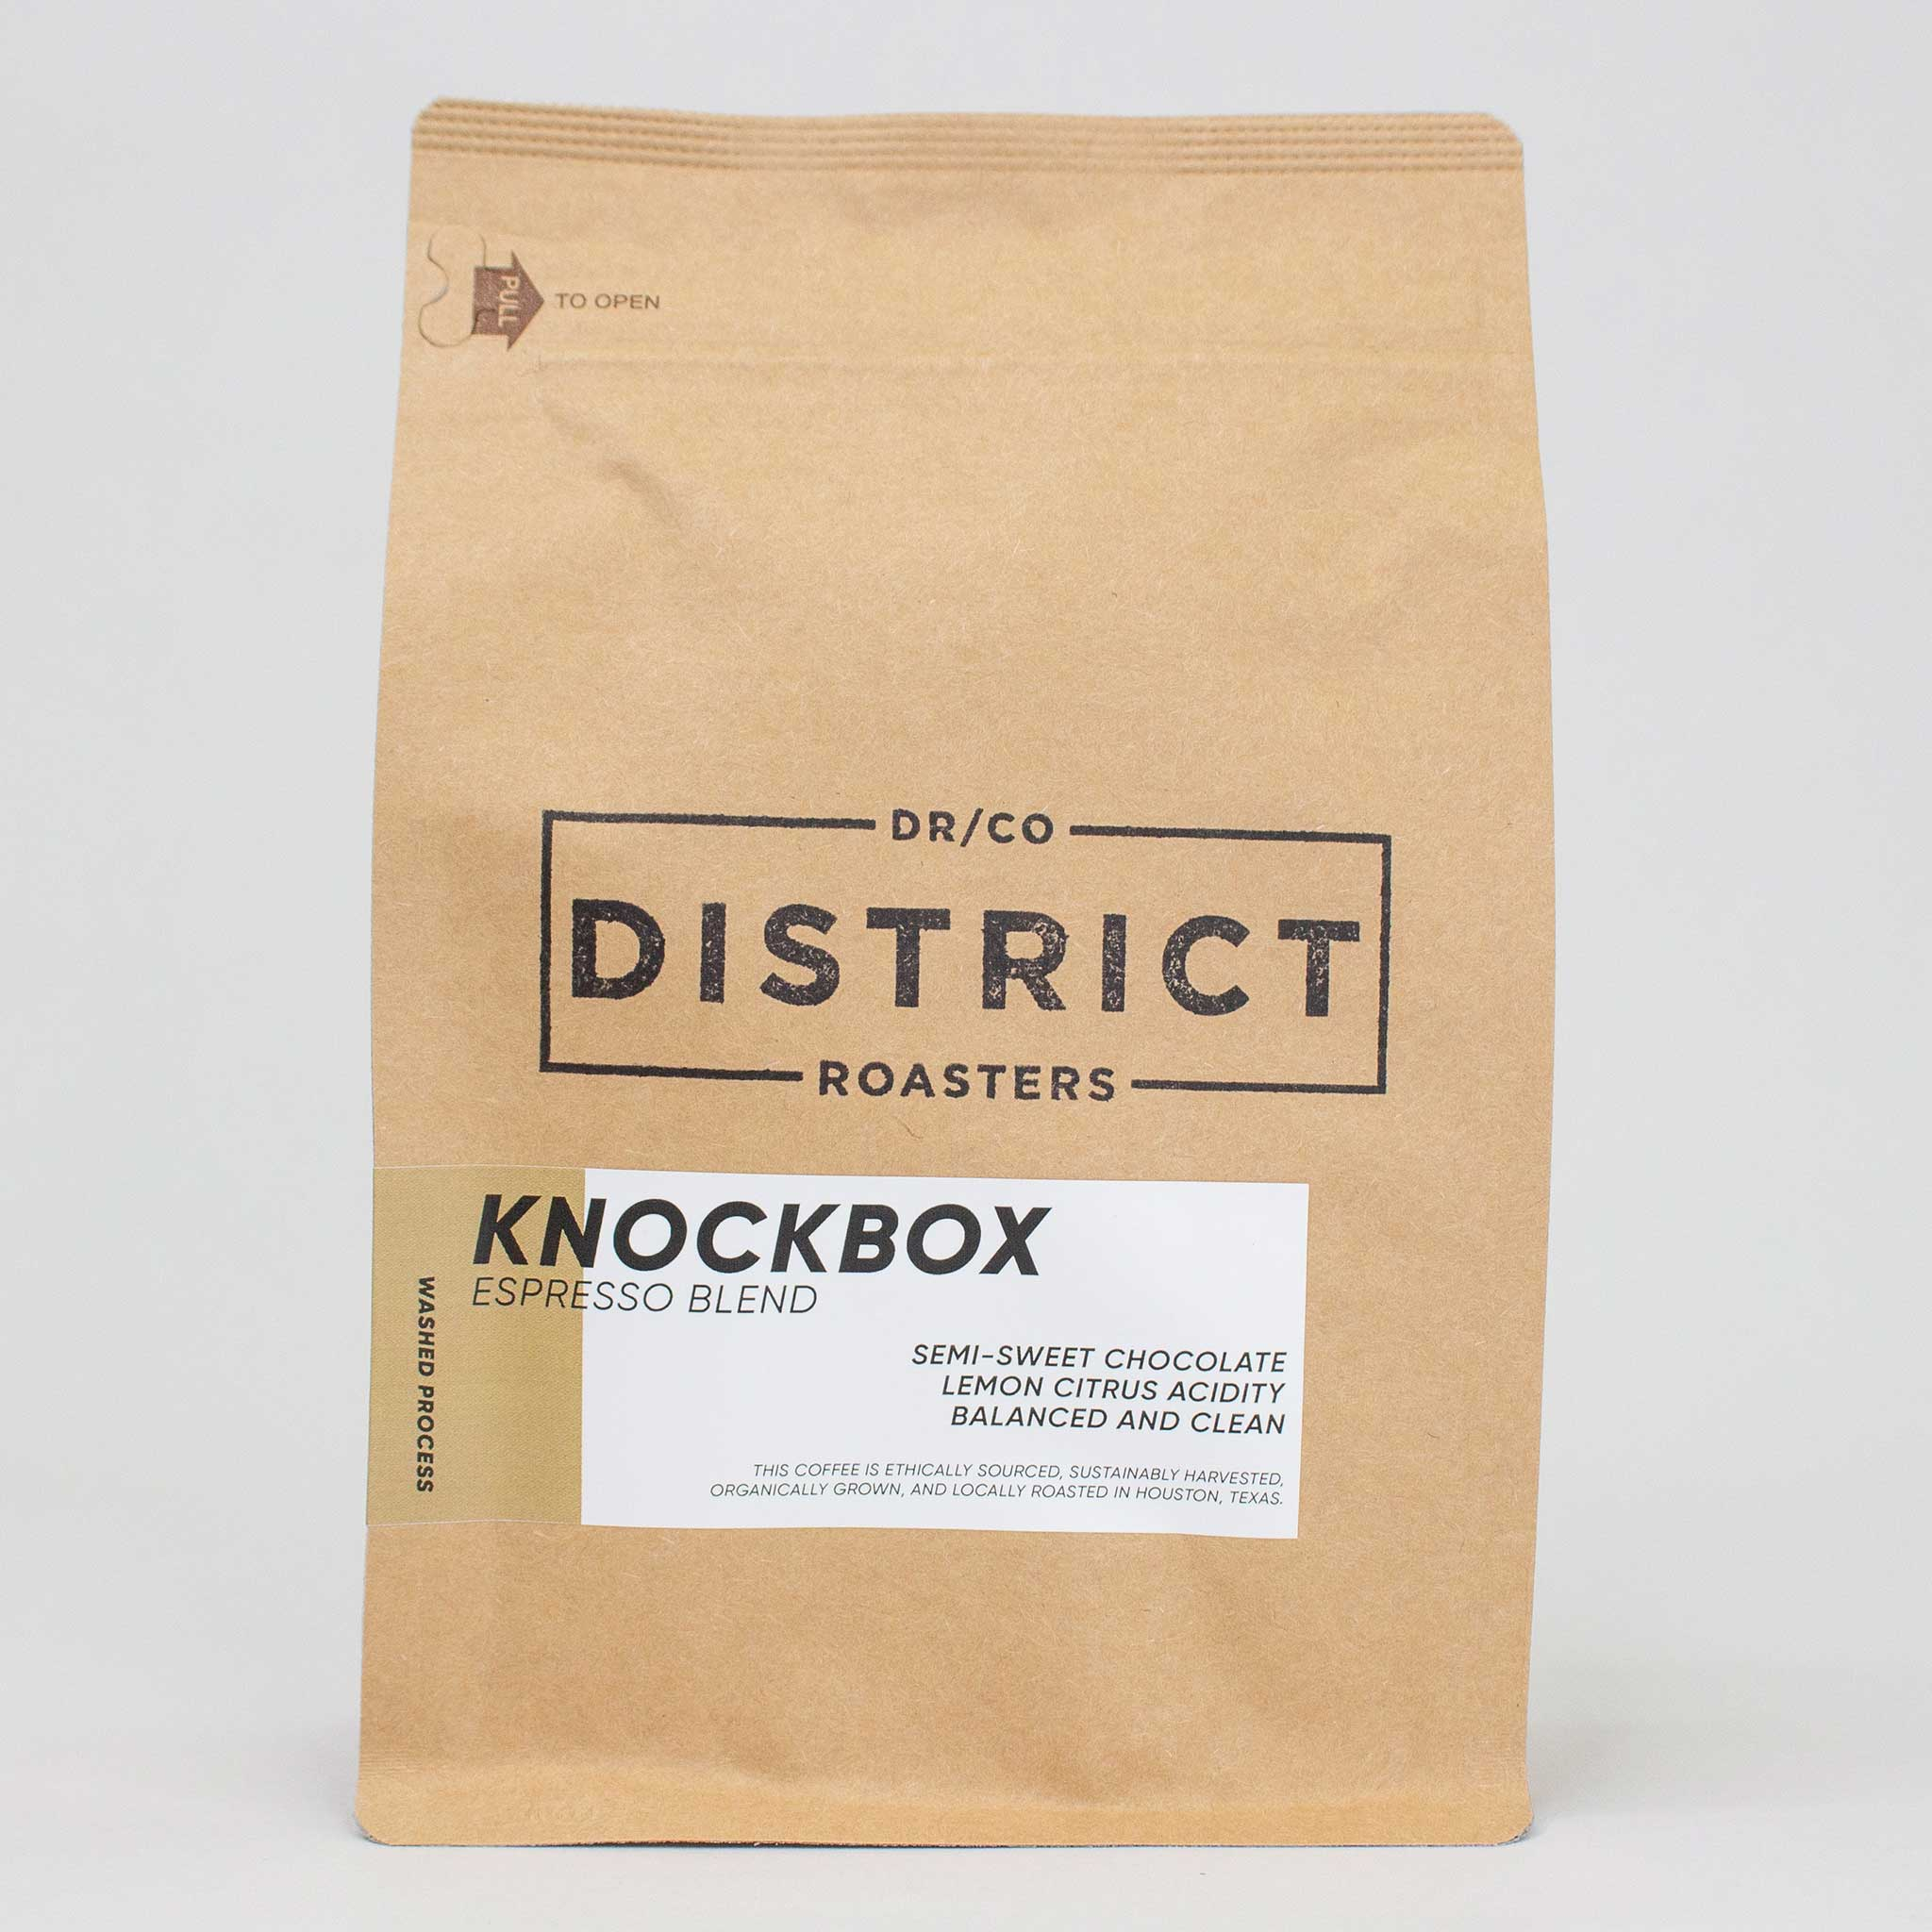 Knockbox Espresso Blend Weekly or Monthly Subscription